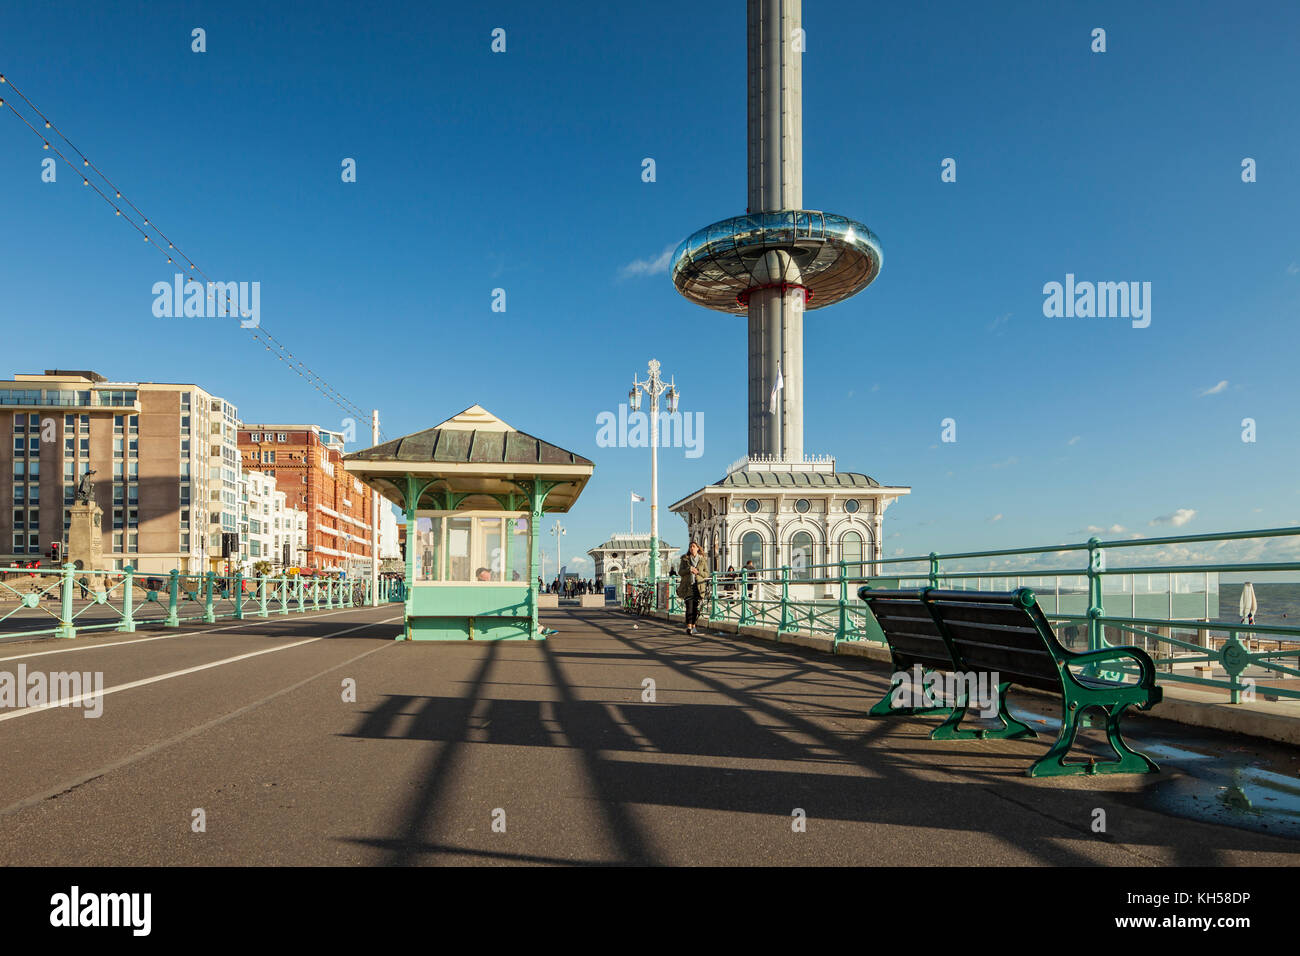 Afternoon on Brighton seafront, East Sussex, England. i360 tower in the distance. Stock Photo